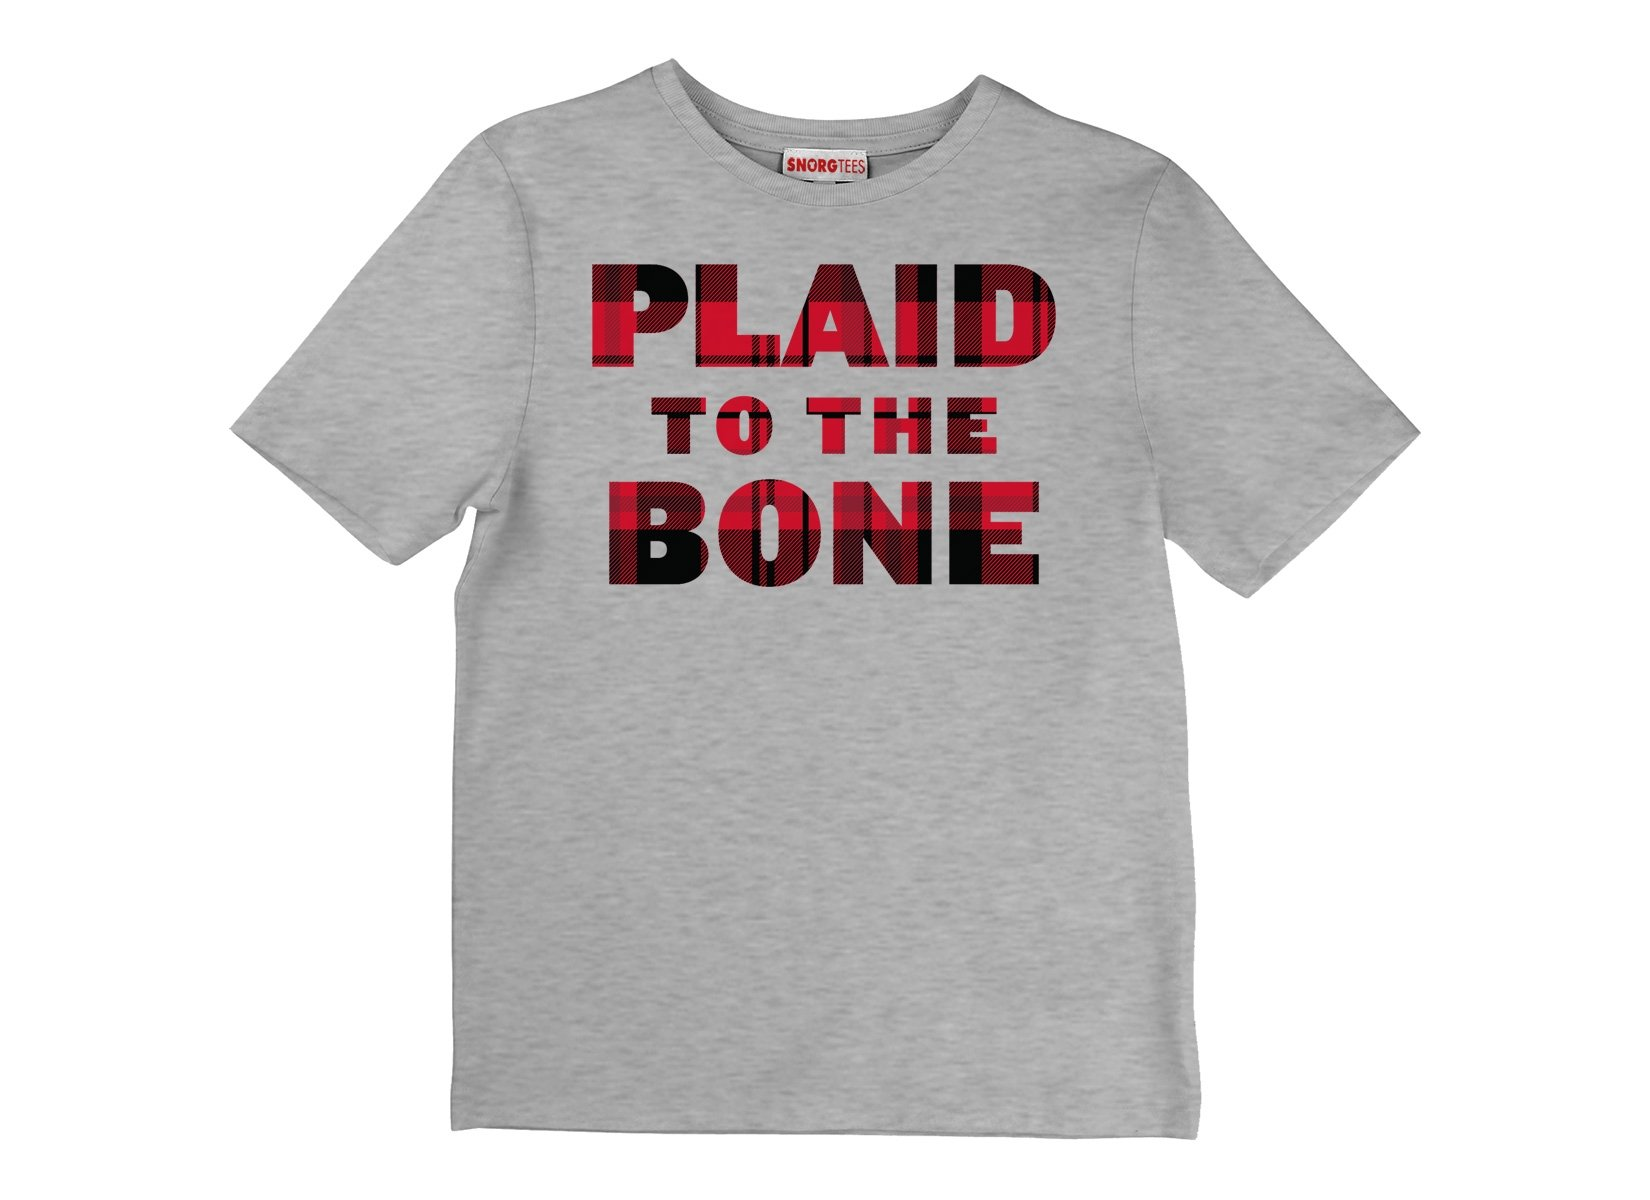 Plaid To The Bone on Kids T-Shirt